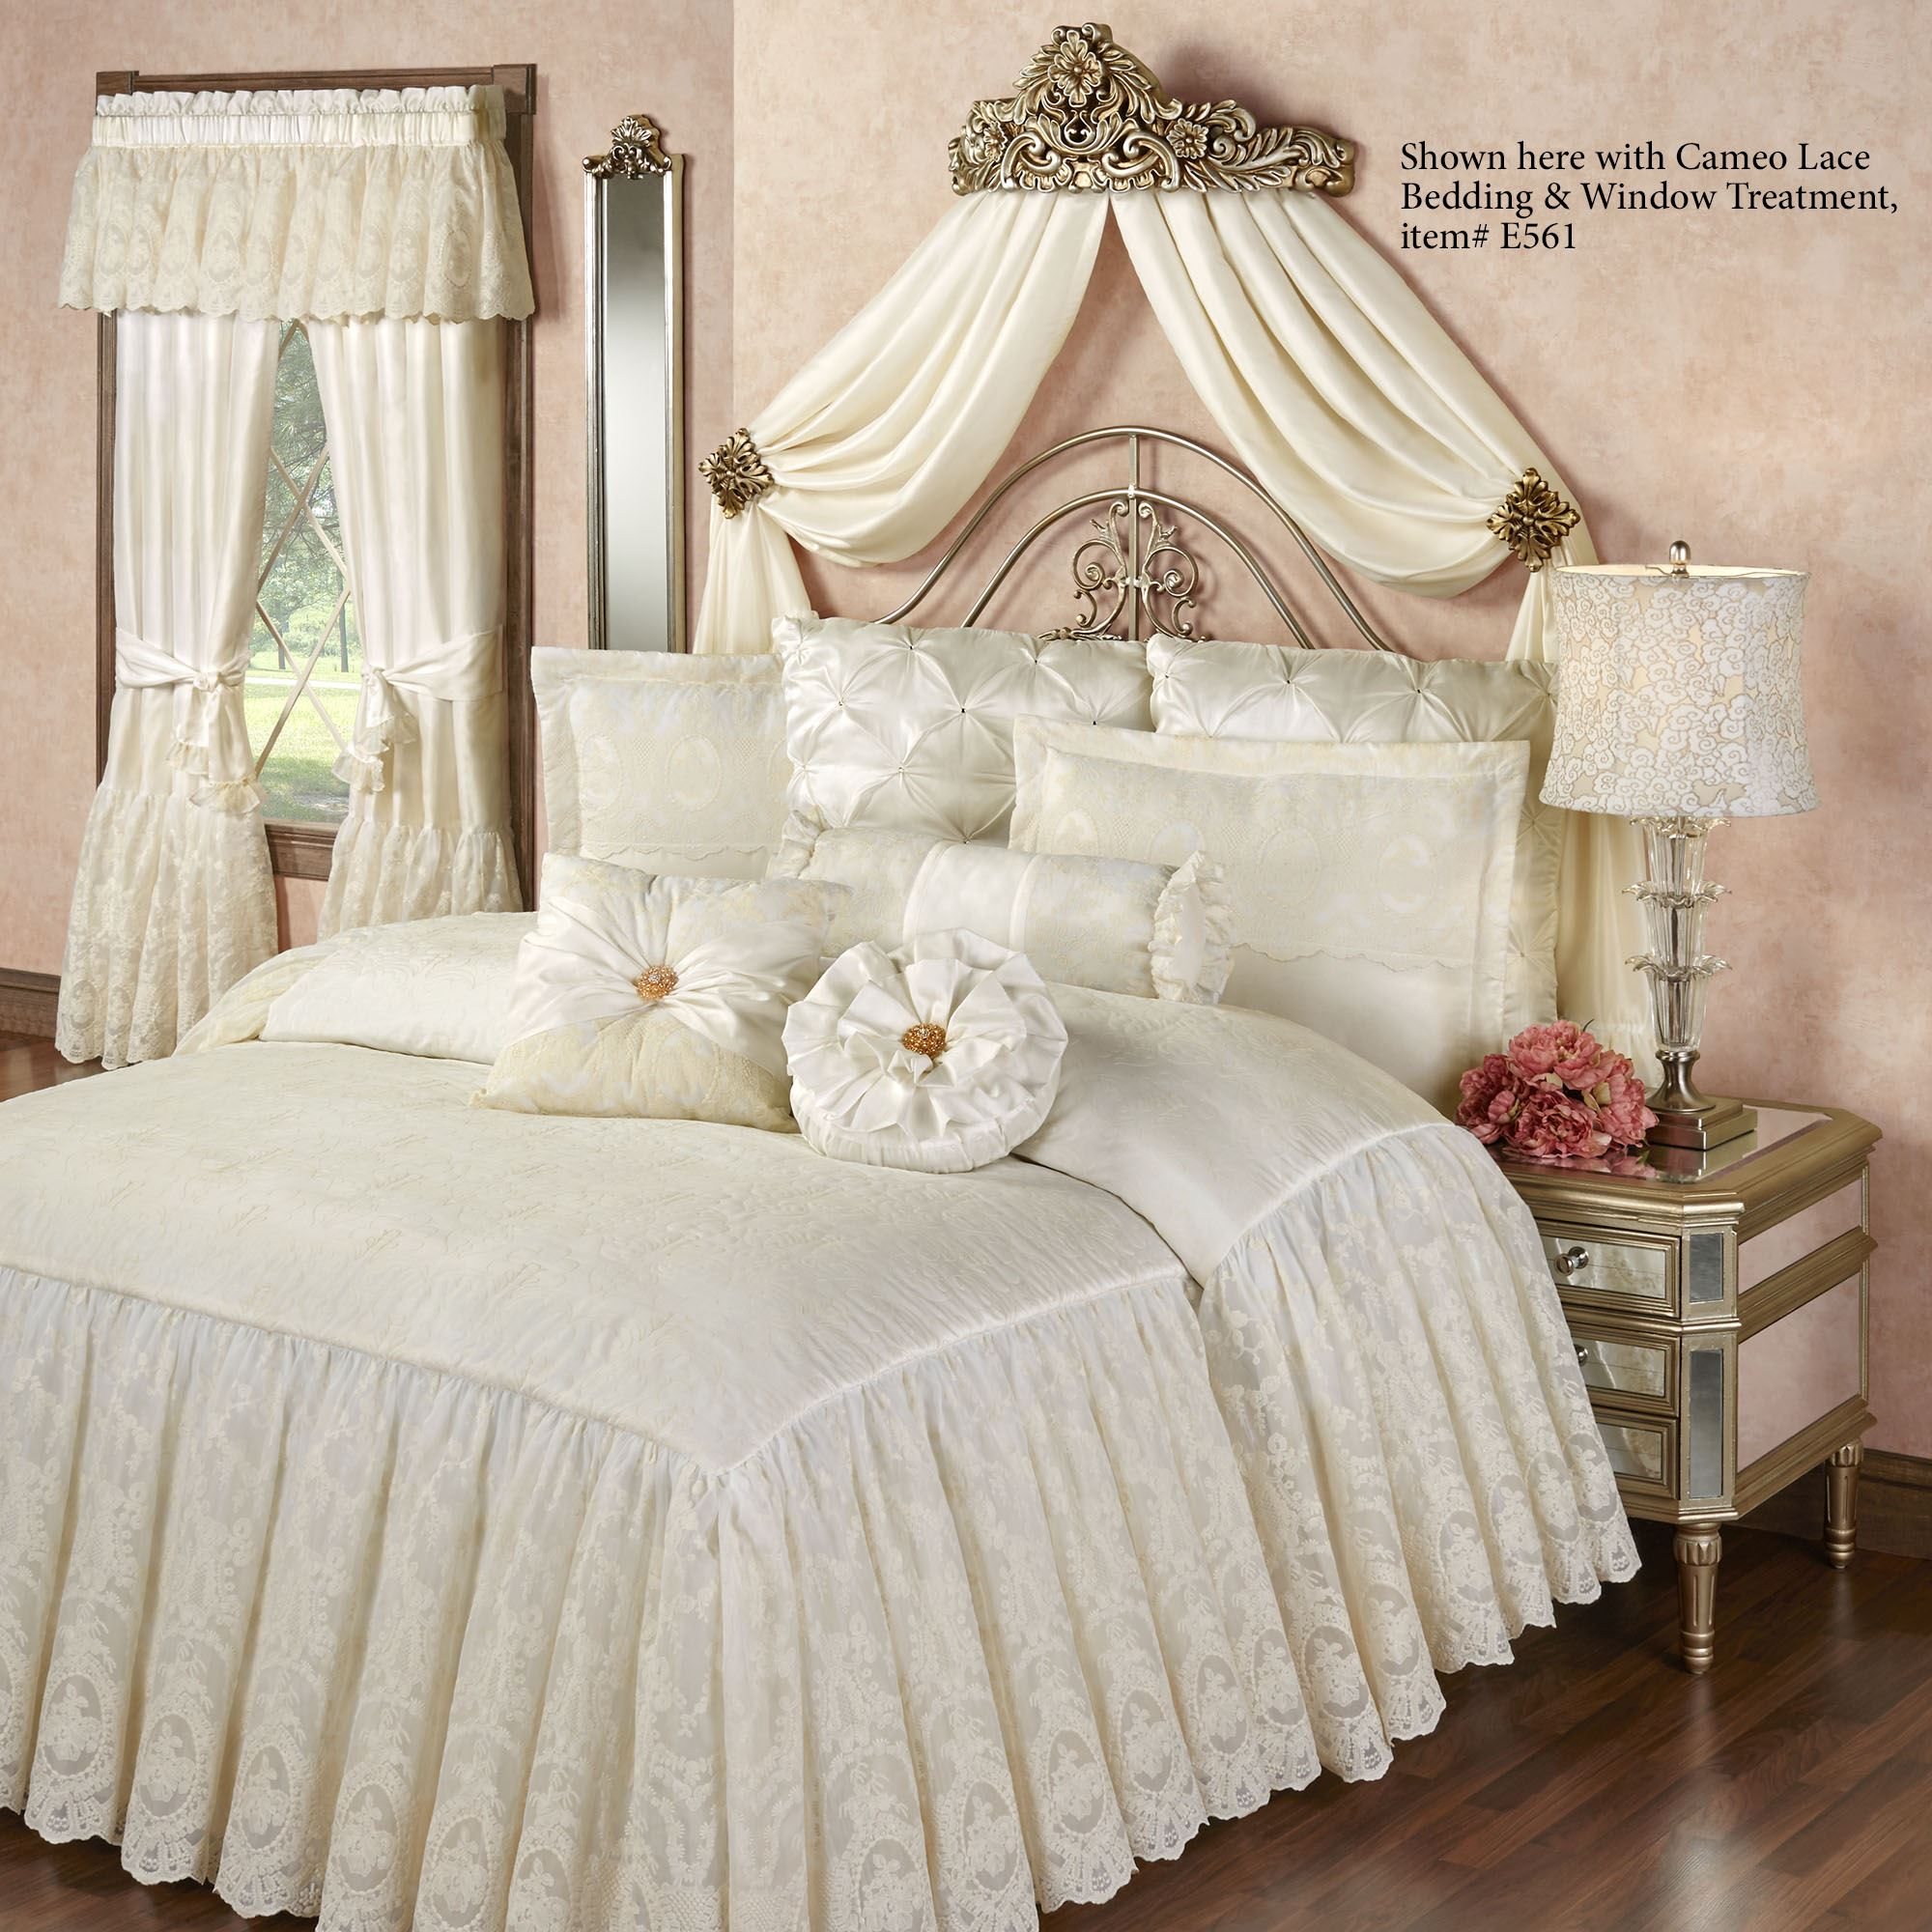 Vania Decorative Wall Teester Bed Crown on Wall Teester Bed Crown  id=11672